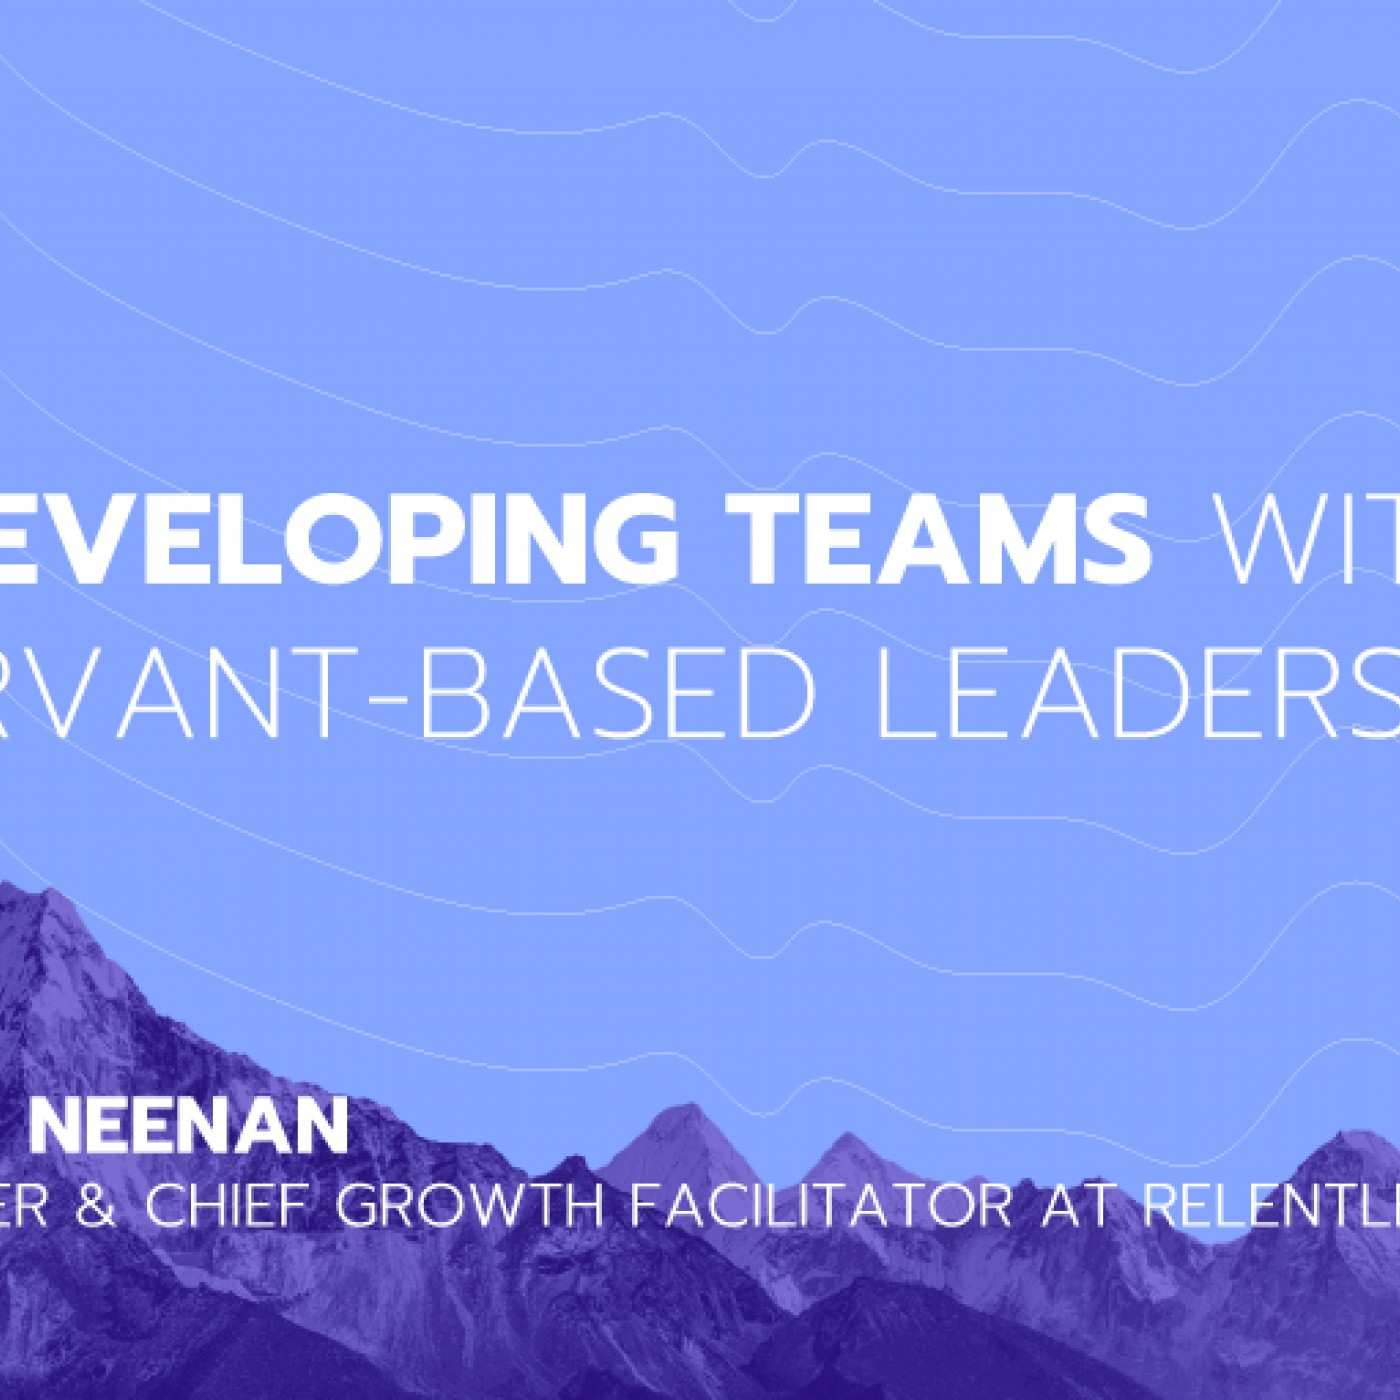 Ep 15: Developing Teams with Servant-Based Leadership feat Chris Neenan